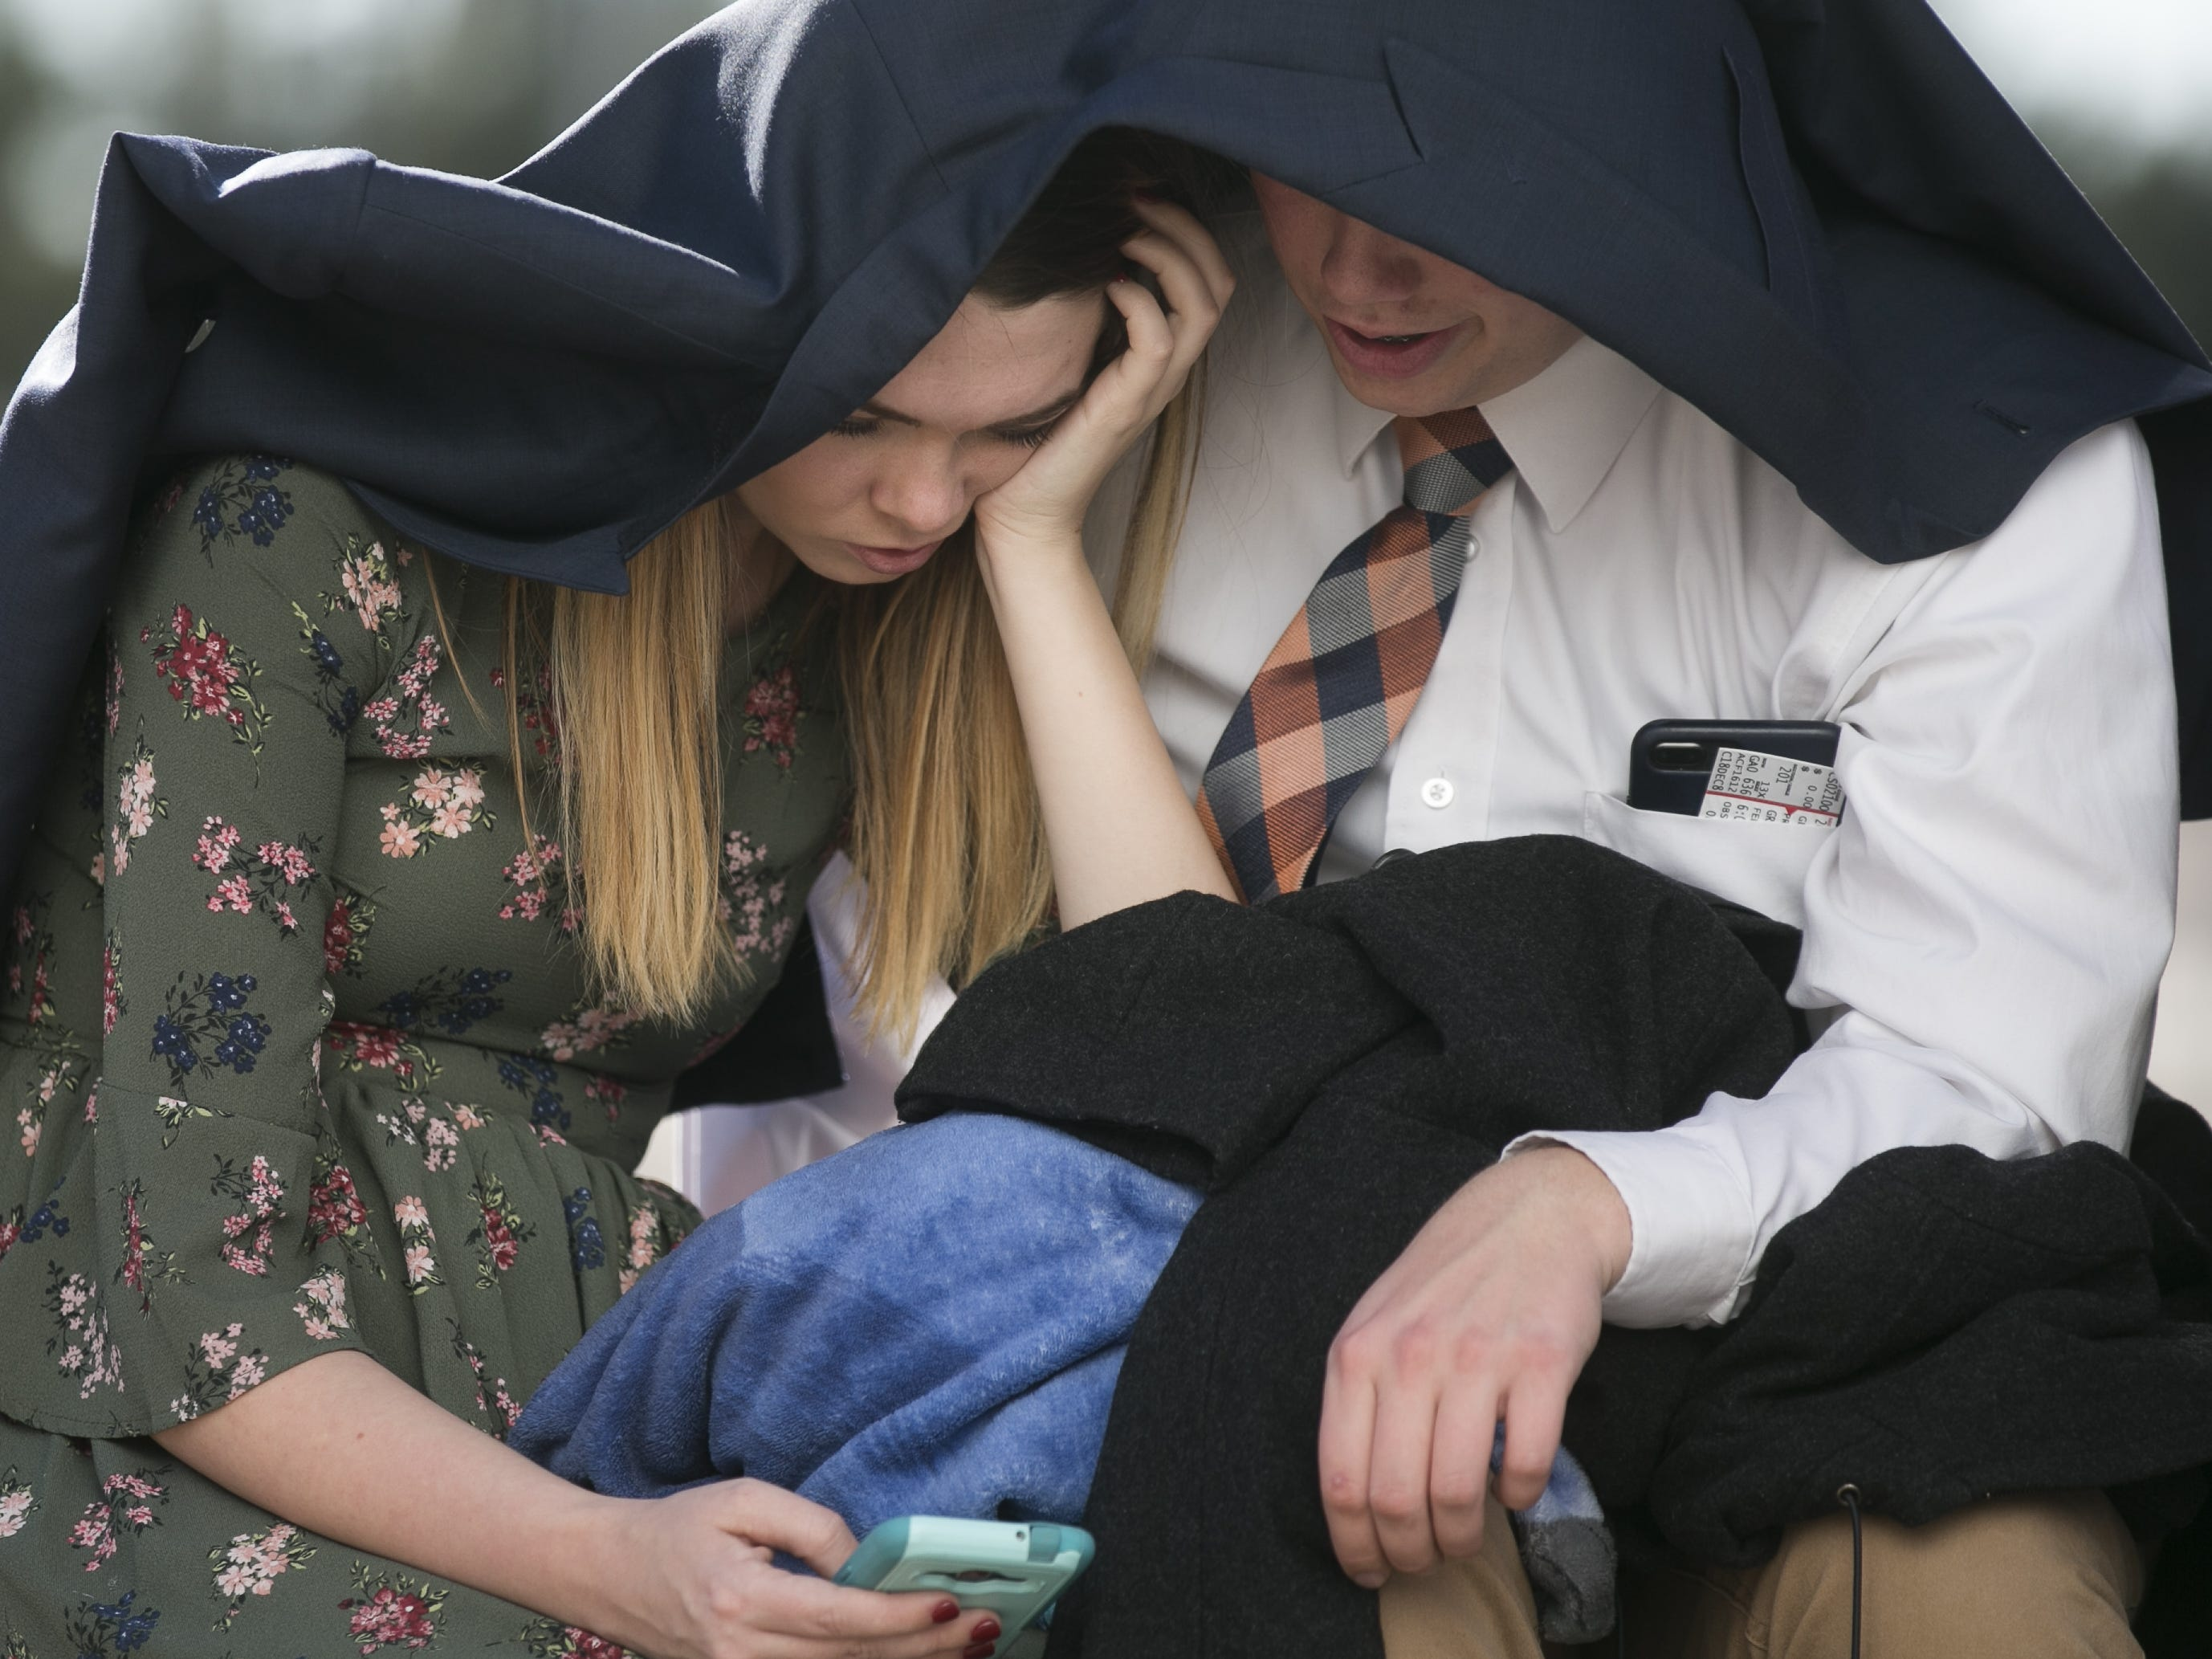 Hannah Lunt (left) and Jacob Boyd (right) use Boyd's coat for shade as they wait with other members of the Church of Jesus Christ of Latter-day Saints at State Farm Stadium to hear church President Russell Nelson speak for a devotional in Glendale, Arizona on Sunday, Feb. 10, 2019.